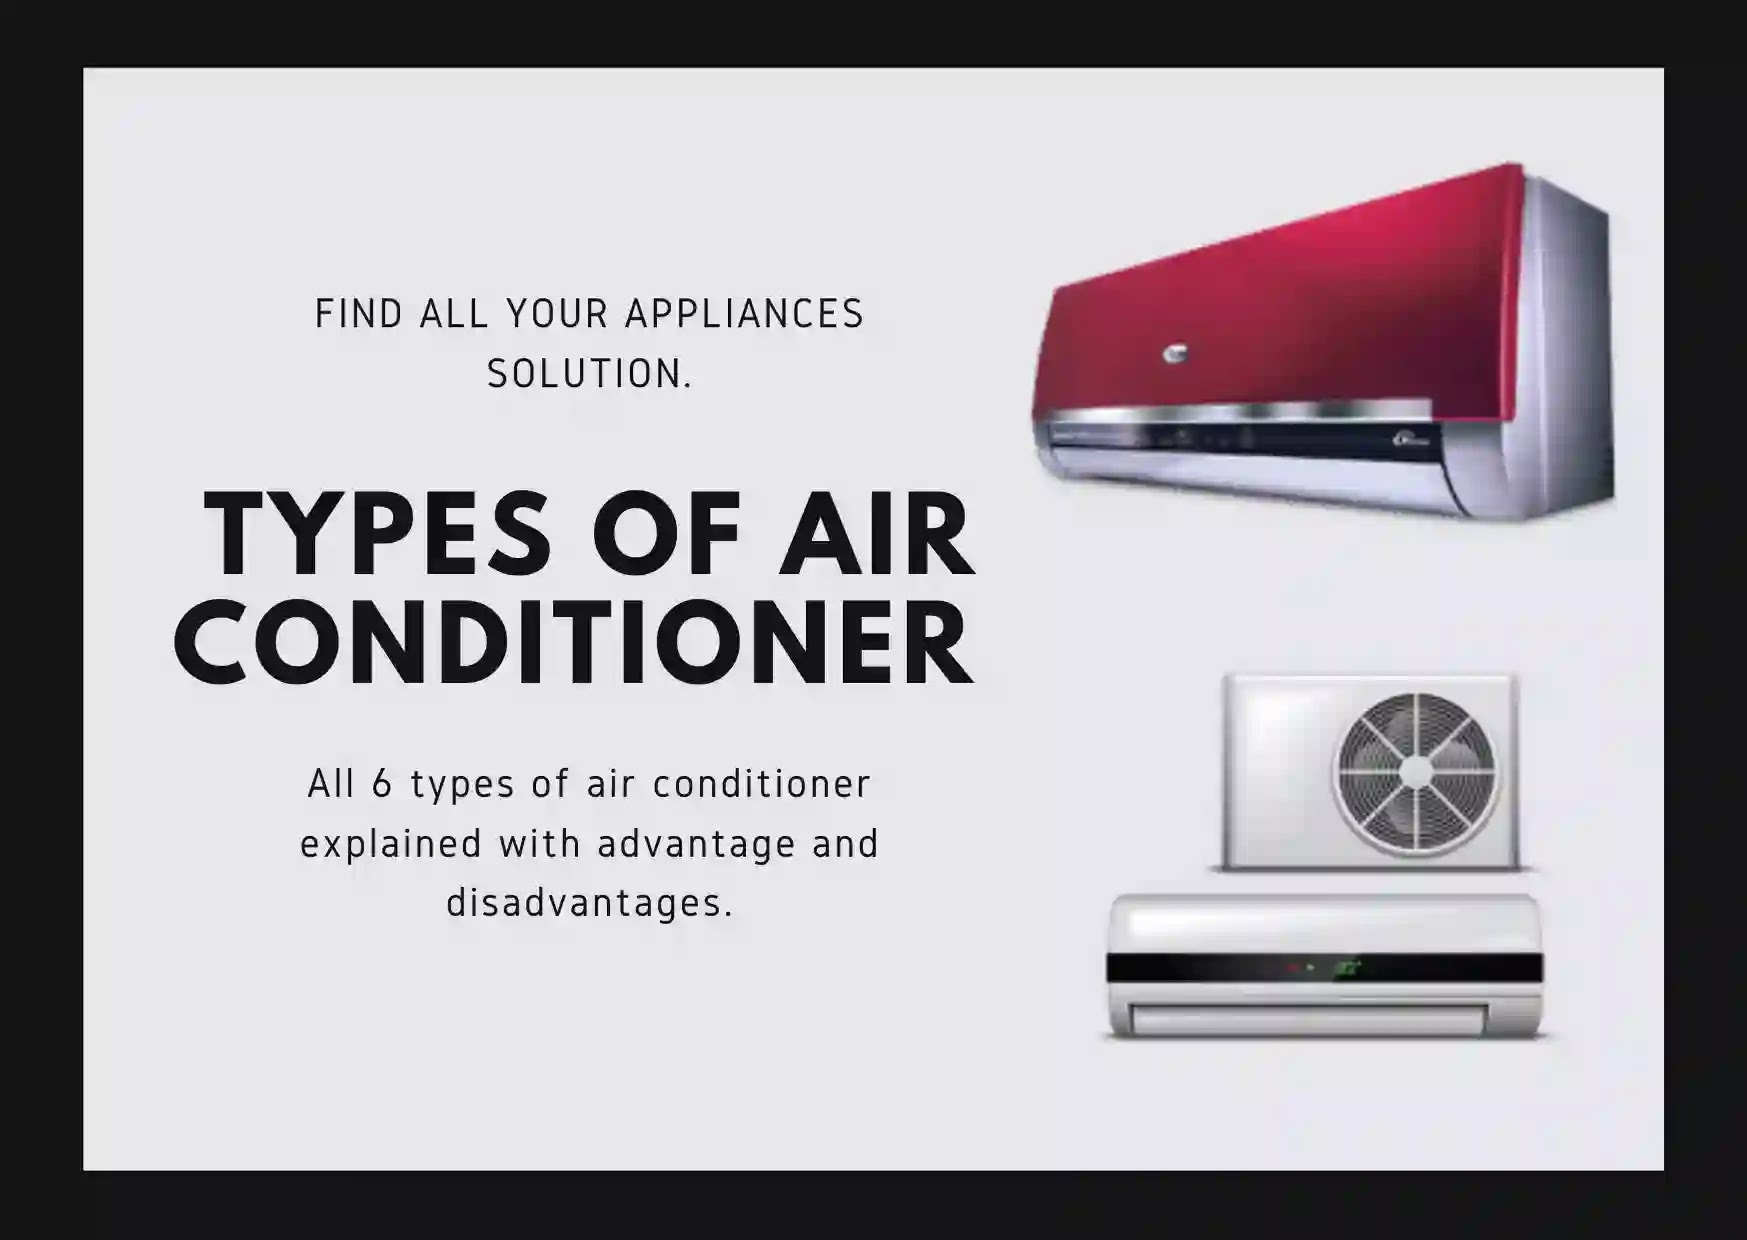 All types of air conditioner